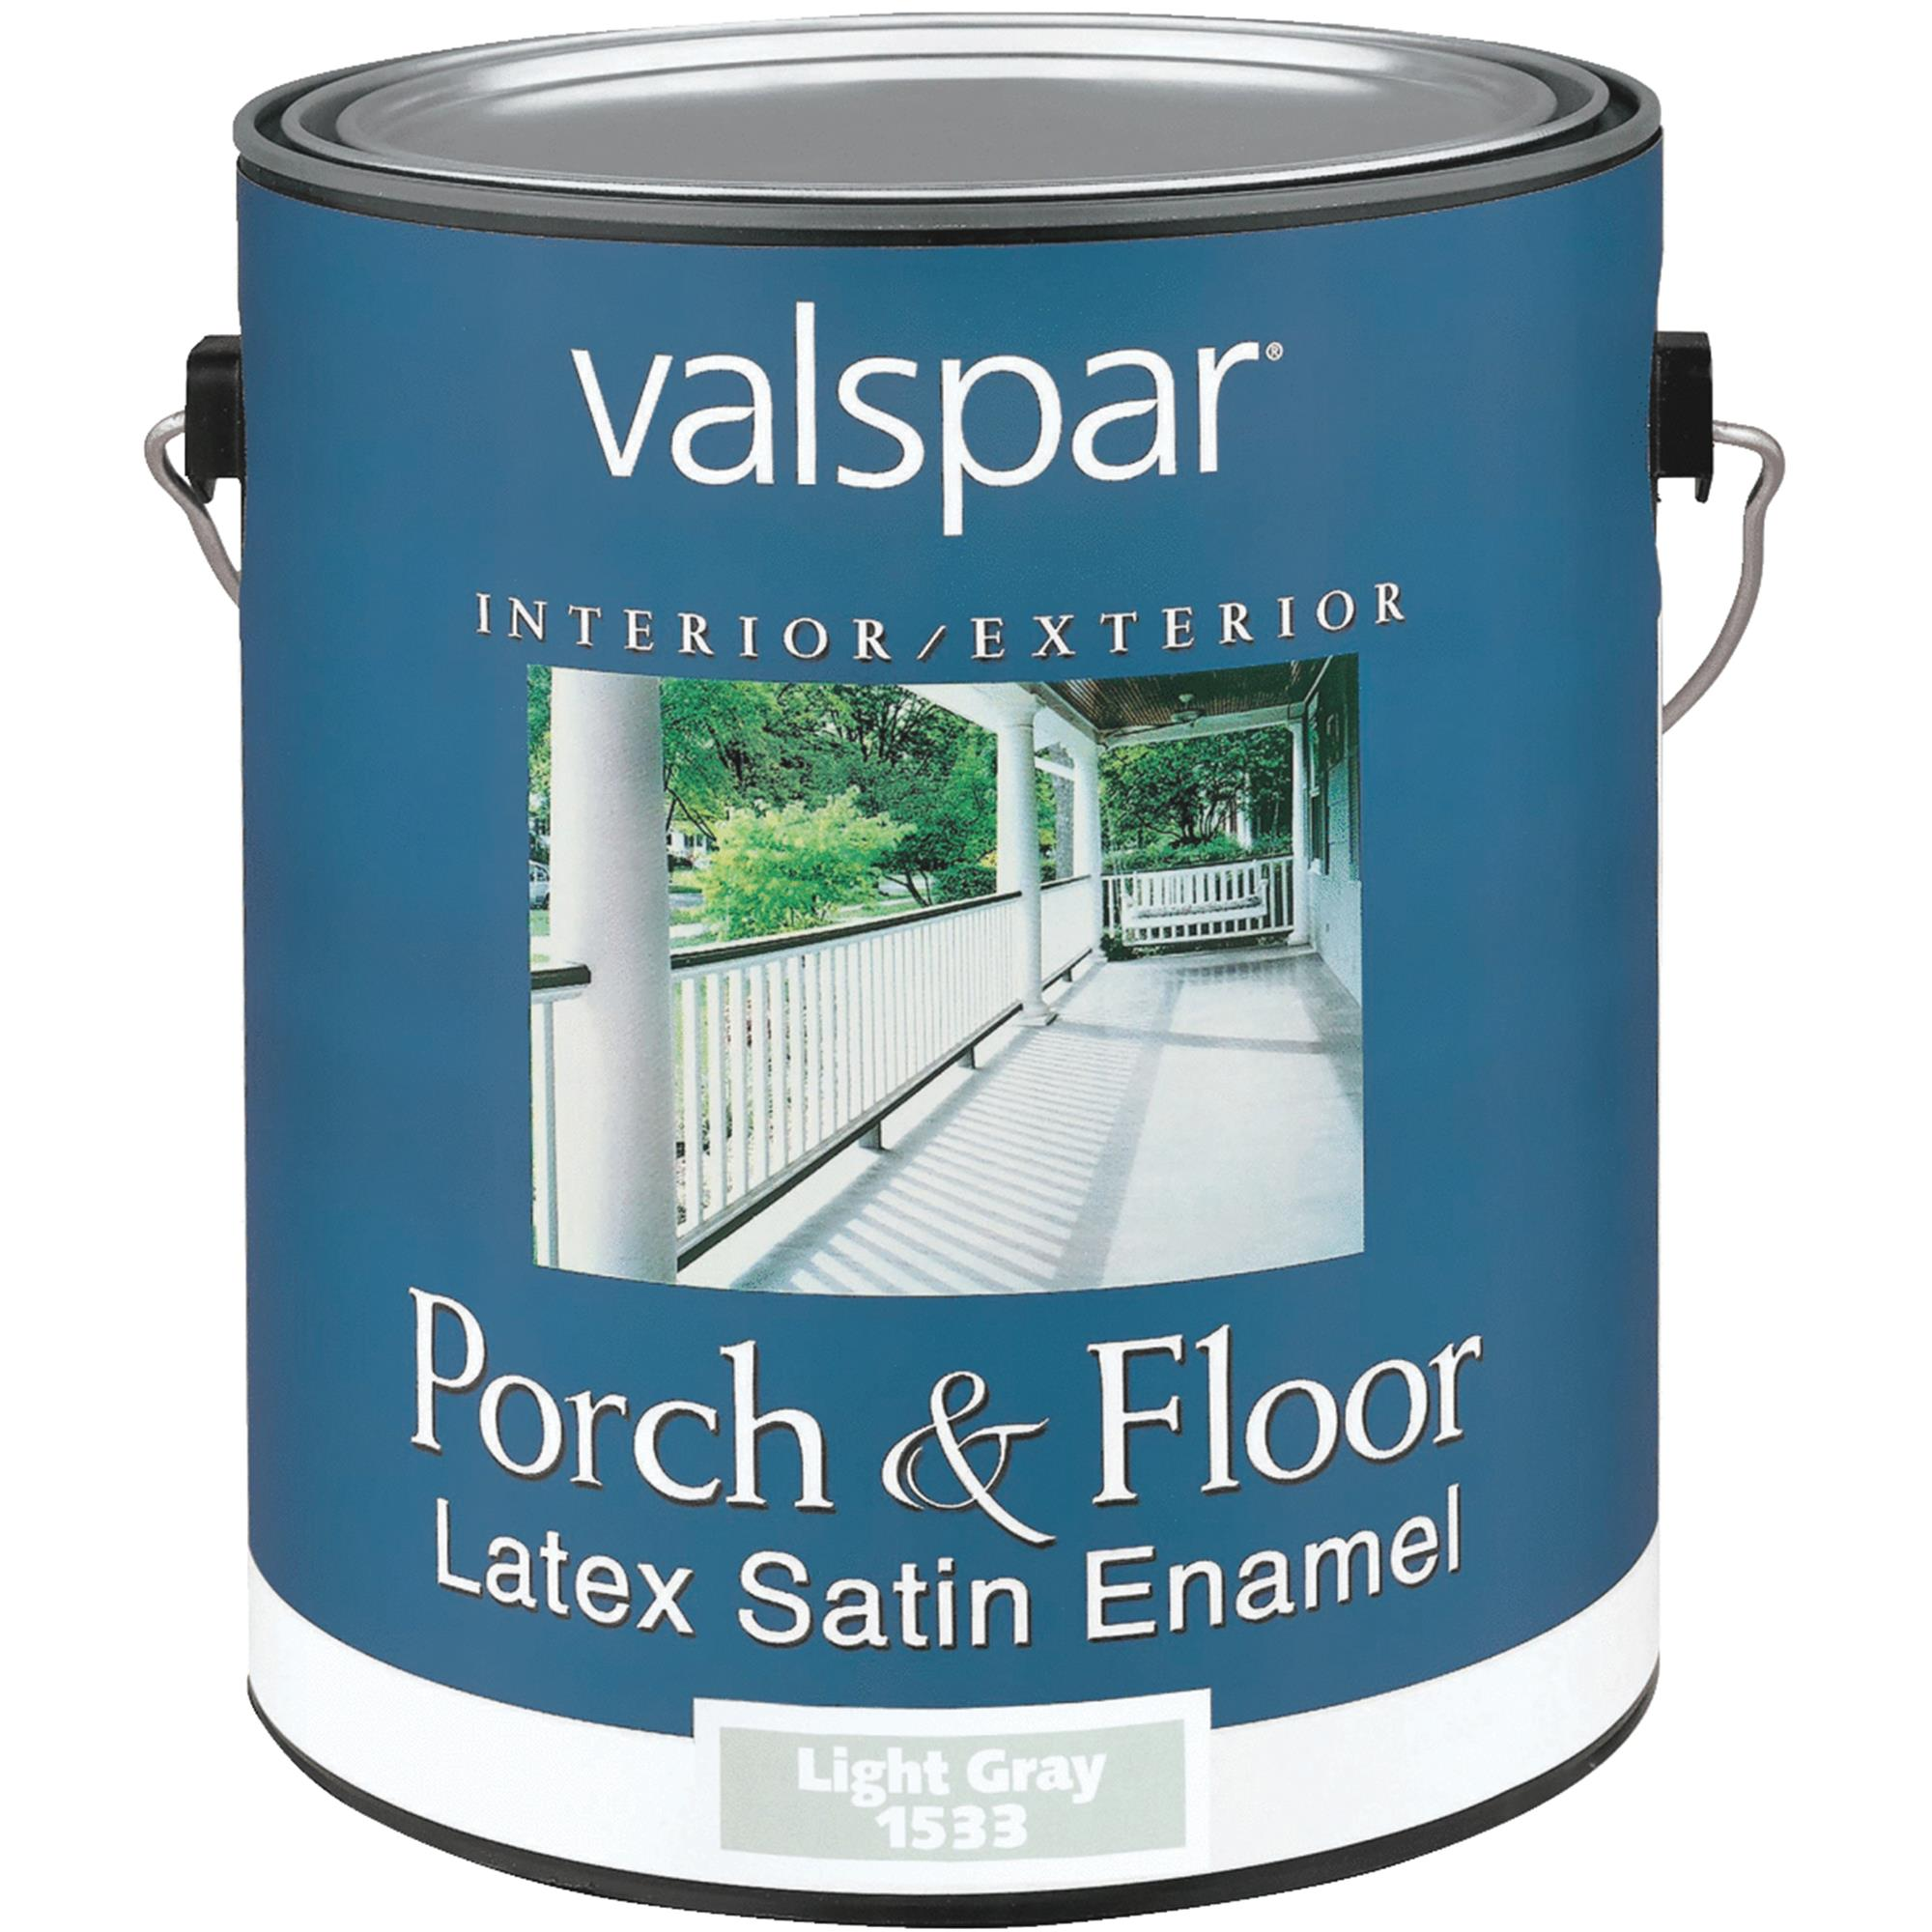 Valspar Self Priming Latex Satin Porch & Floor Enamel